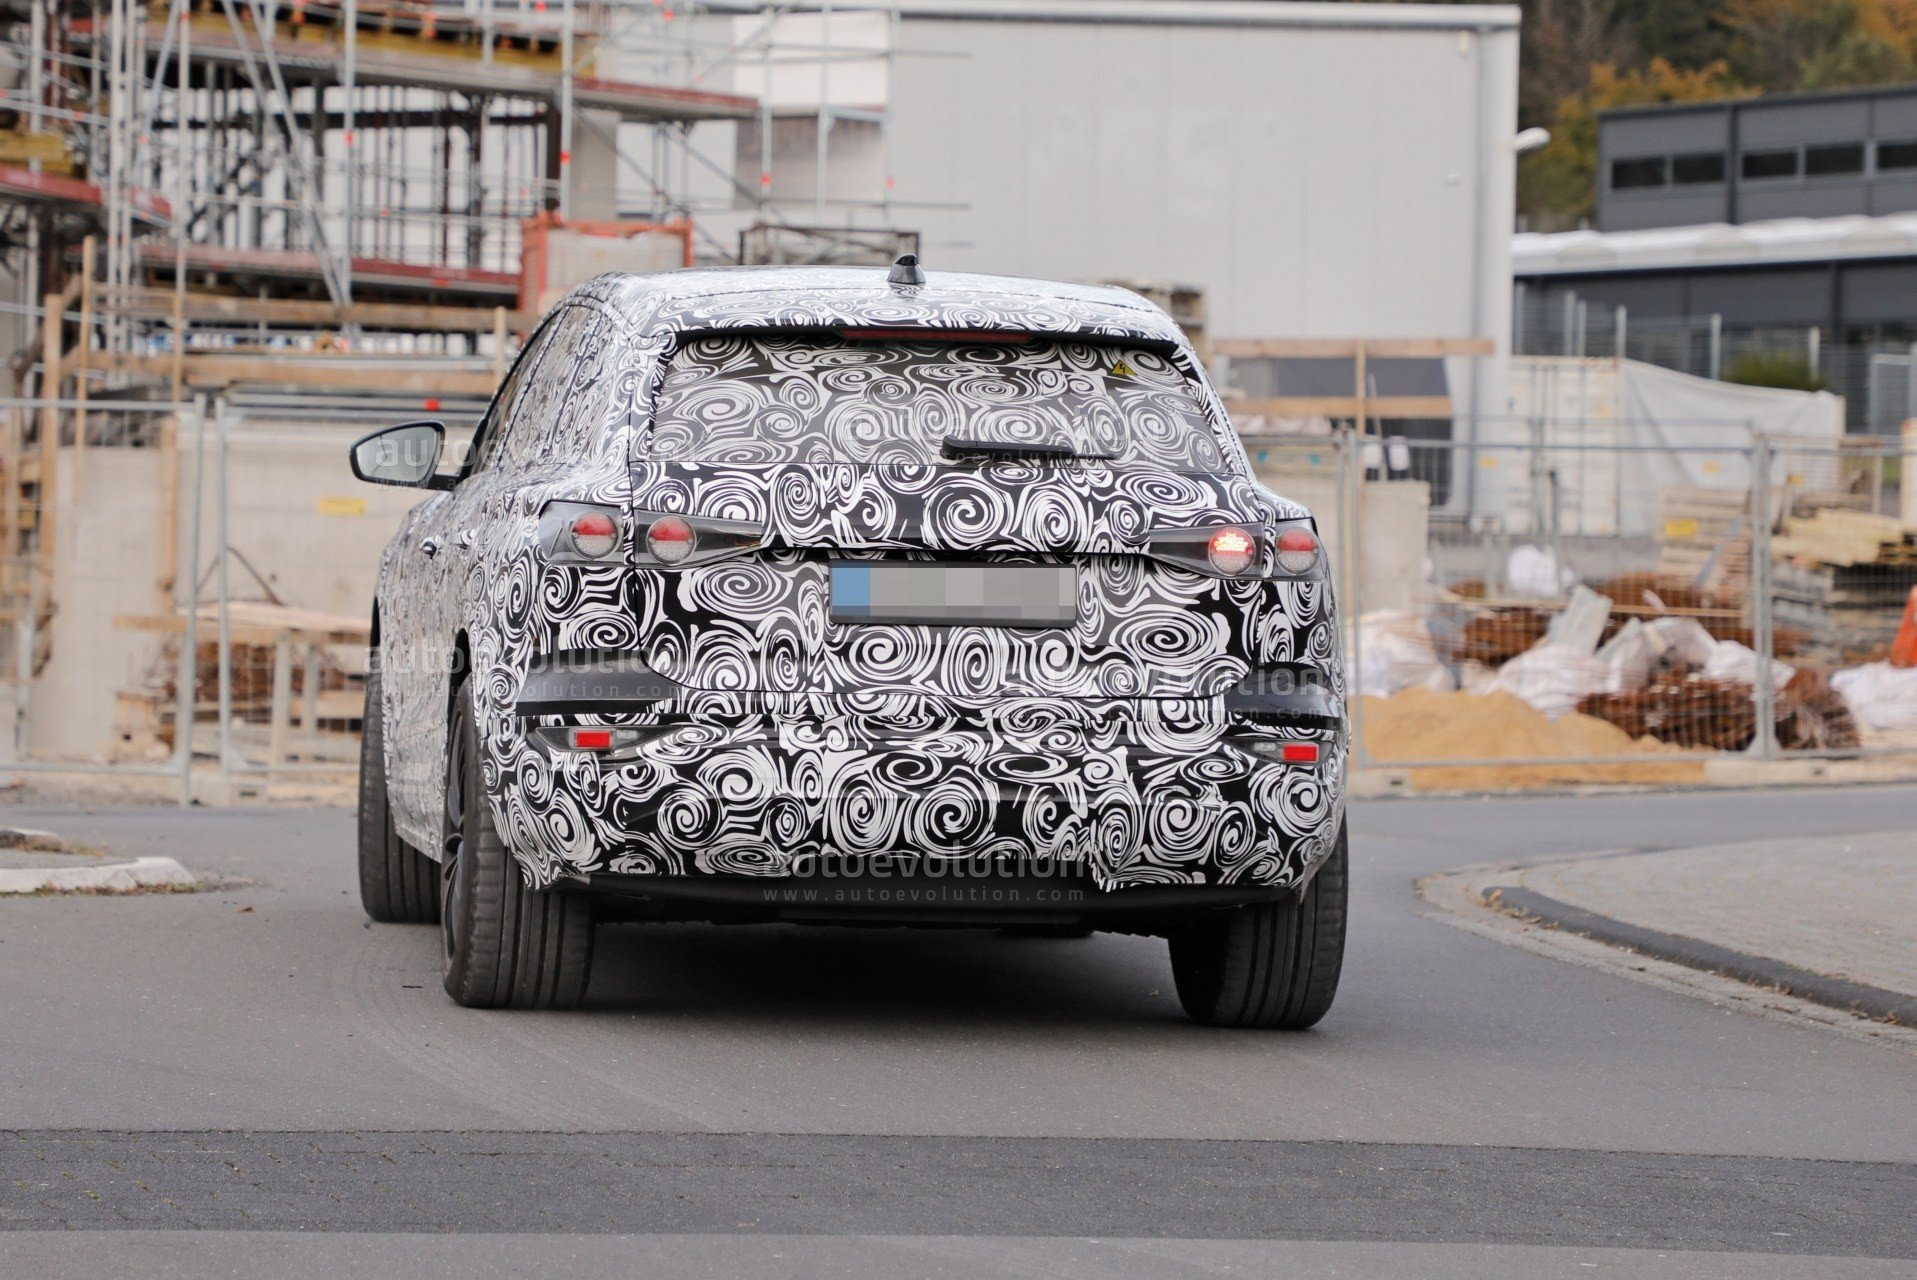 2023-audi-q6-e-tron-prototype-spied-wearing-full-camouflage-is-fully-electric_12.jpg